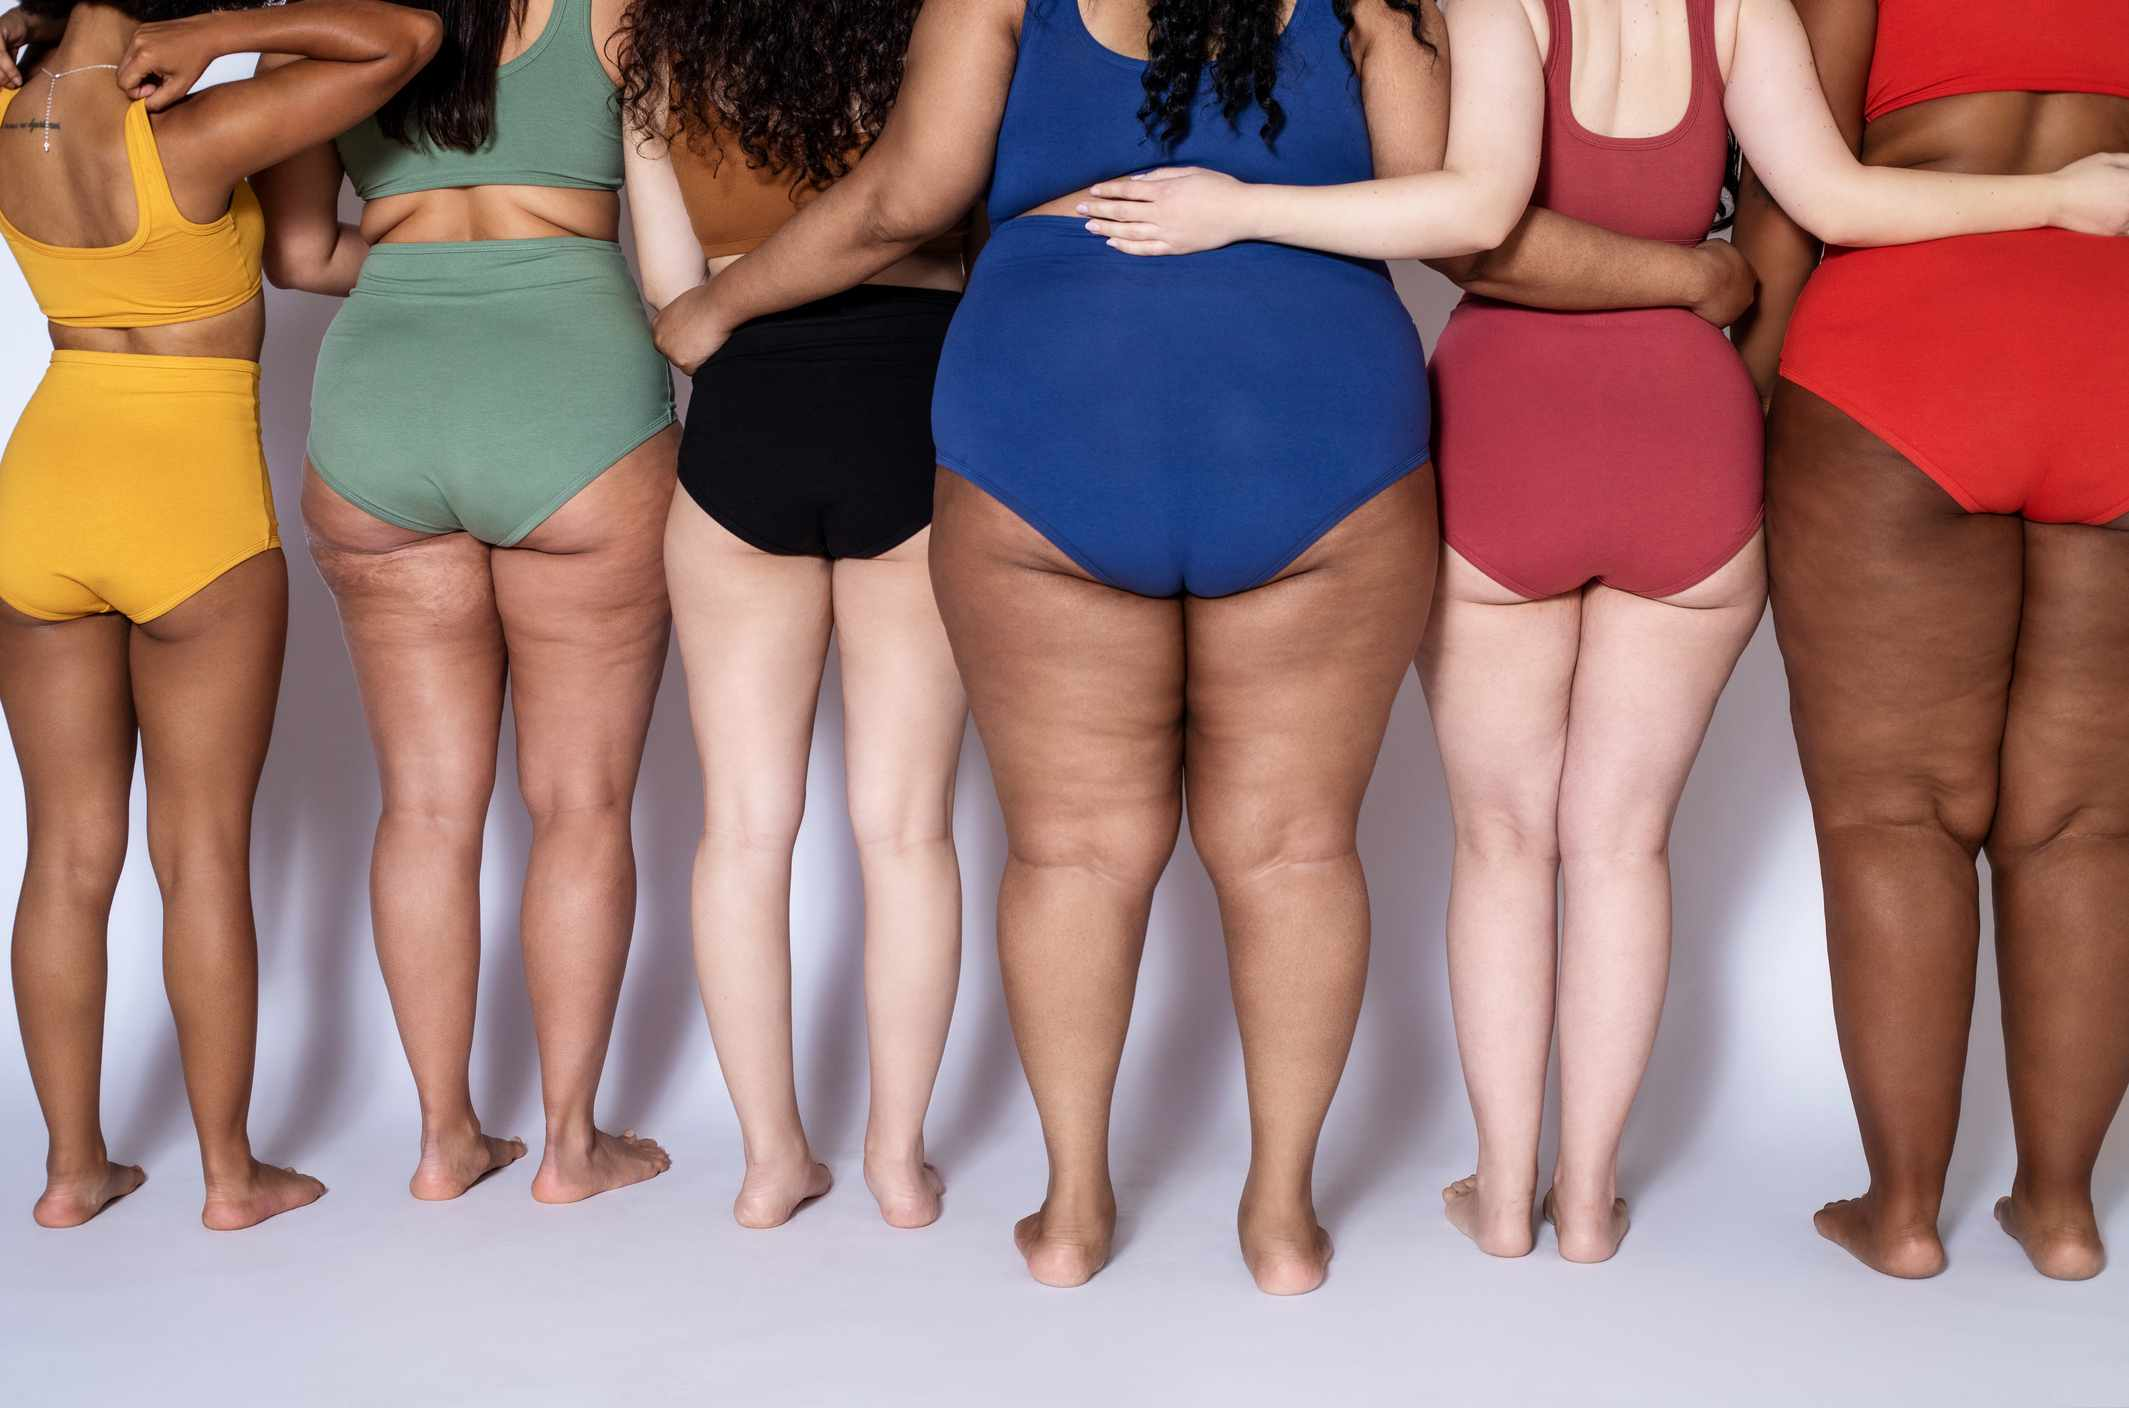 Rear view of group of women with different body types in underwear standing together on white background.